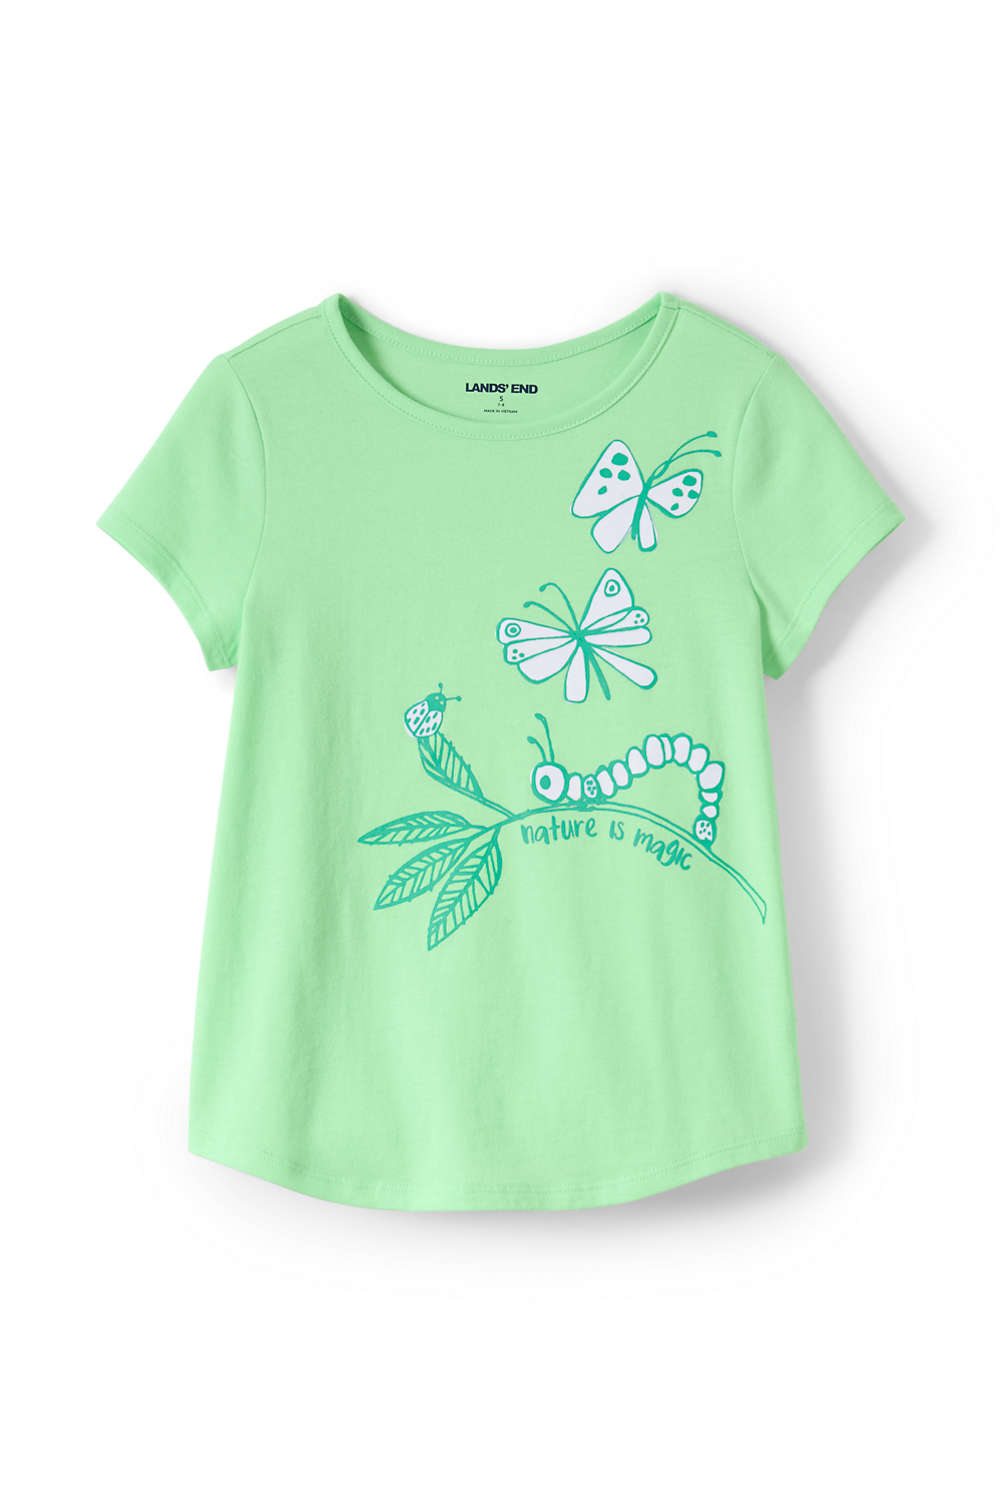 bbdfc5114 Toddler Girls Color Change Graphic Tee Shirt from Lands' End